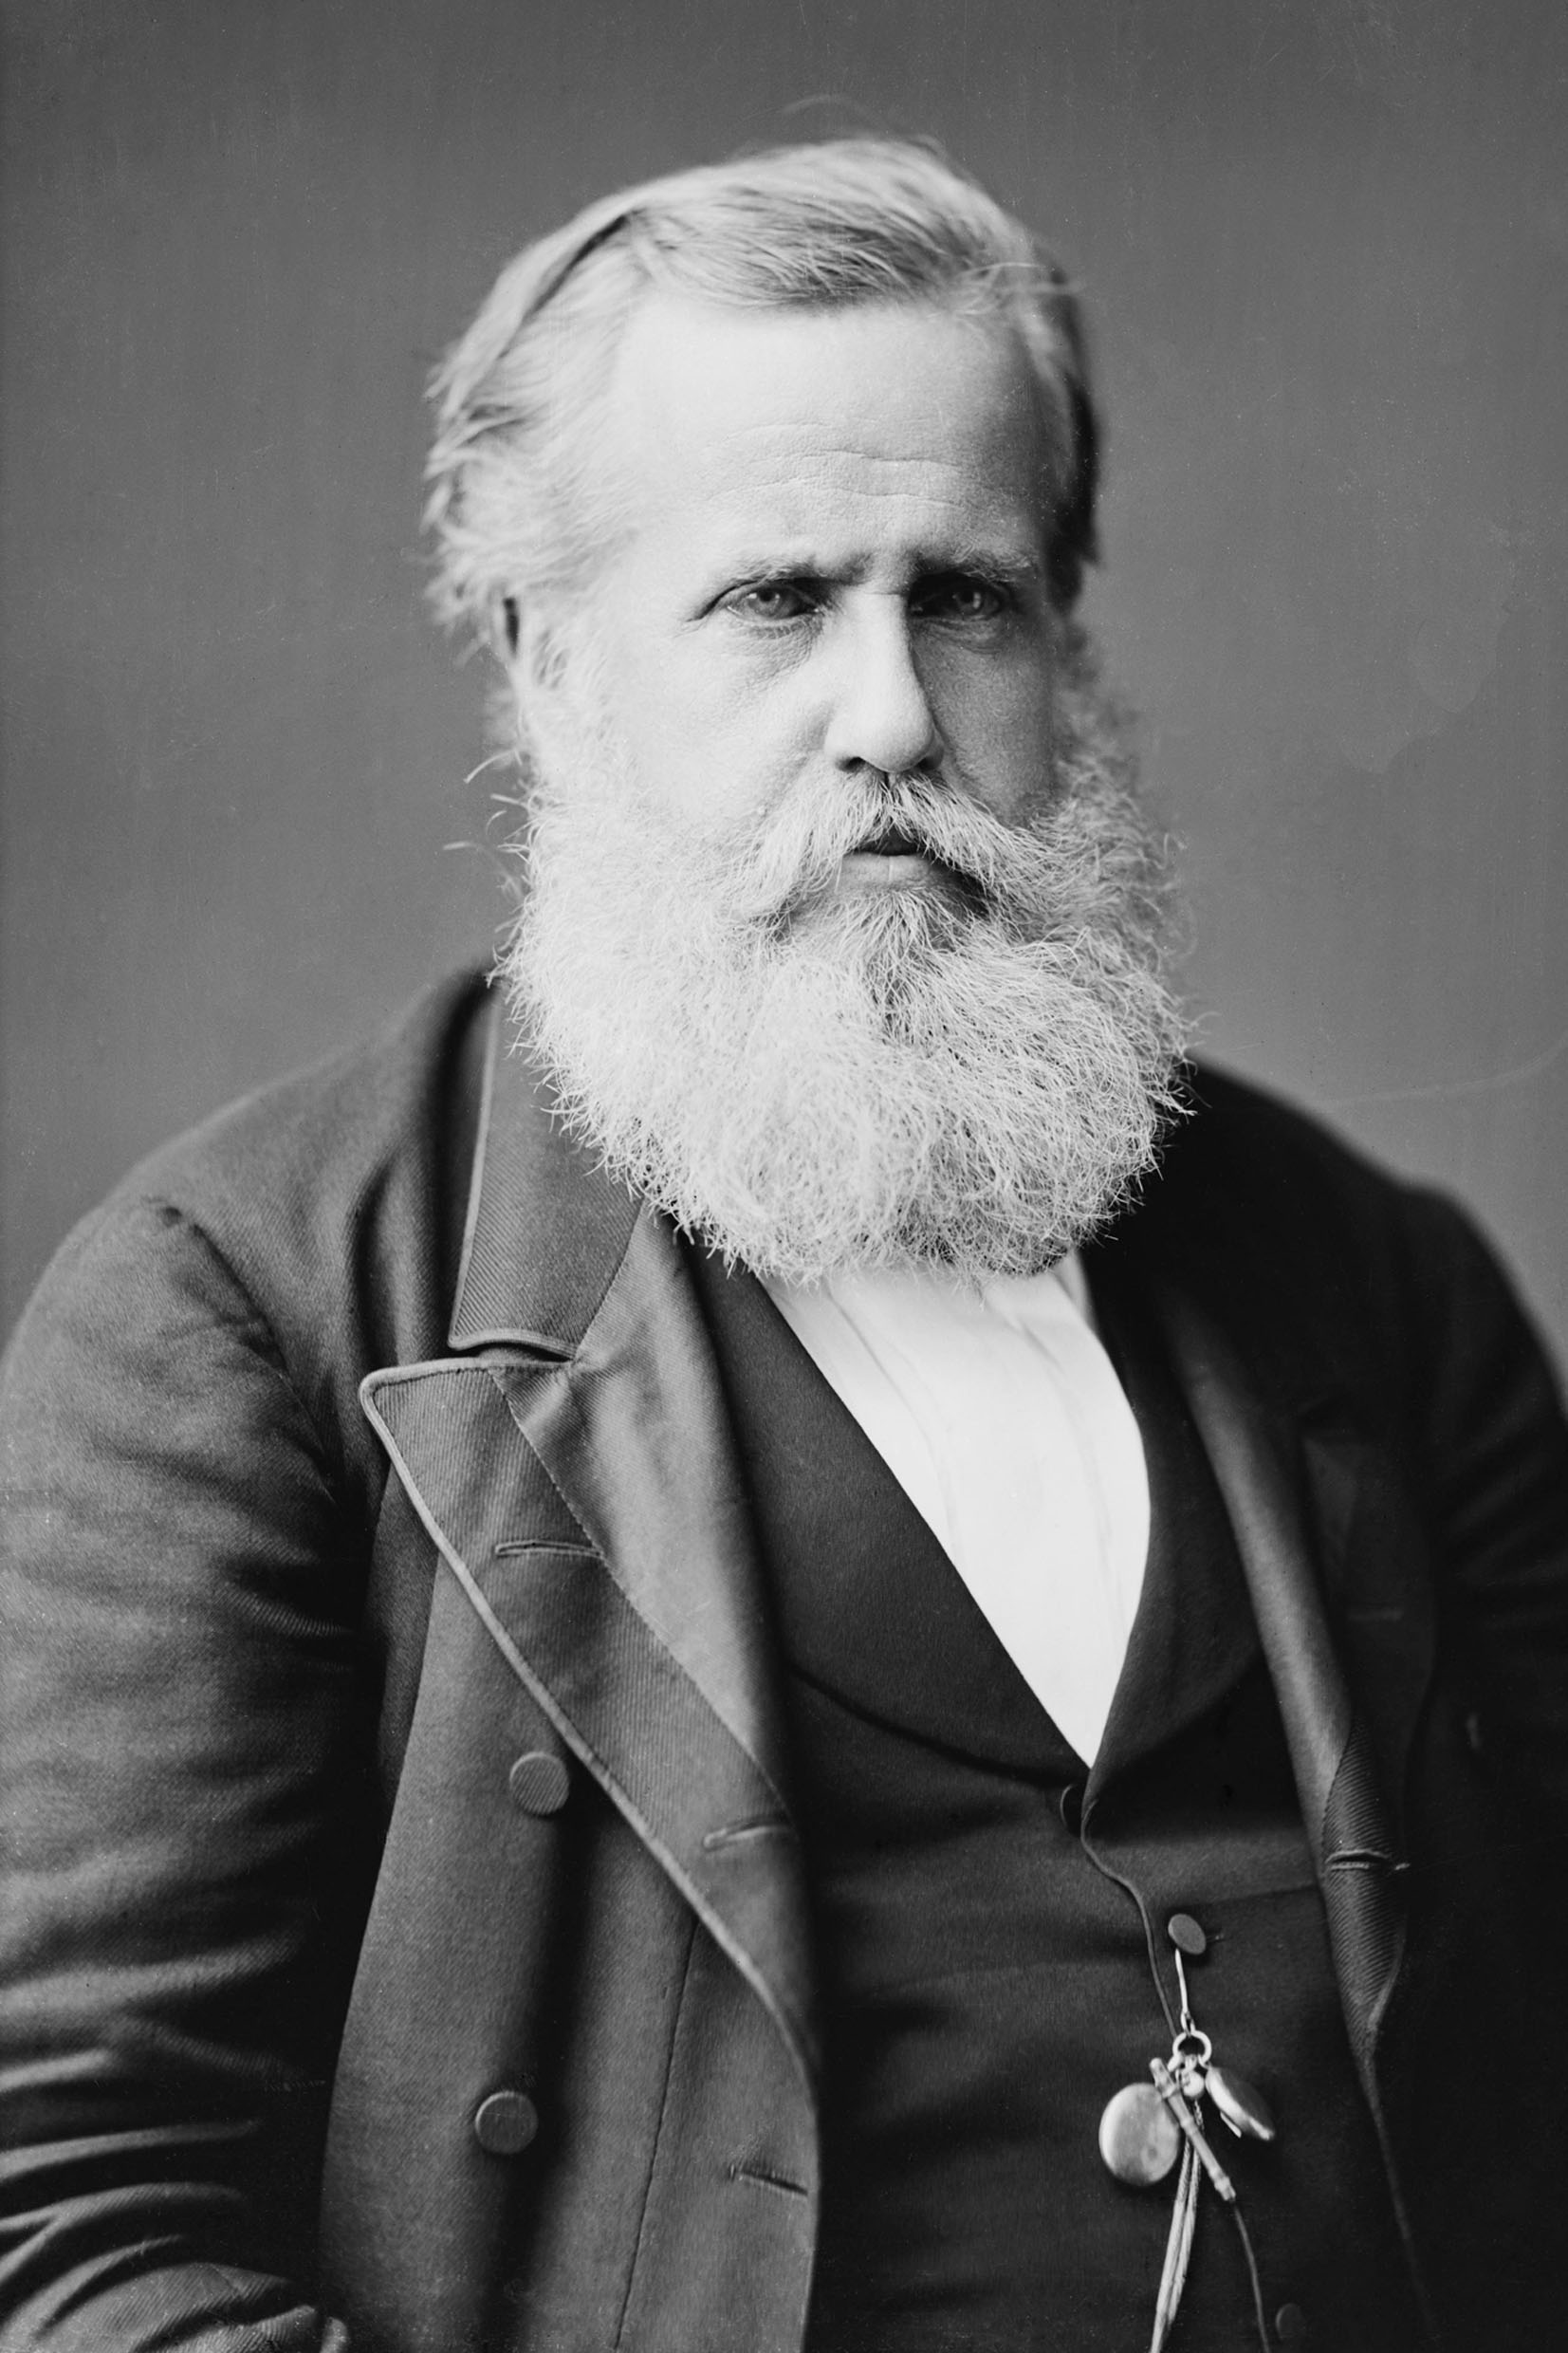 D. Pedro II <a style='float:right' href='https://www3.al.sp.gov.br/repositorio/noticia/N-11-2015/fg179027.jpg' target=_blank><img src='/_img/material-file-download-white.png' width='14px' alt='Clique para baixar a imagem'></a>